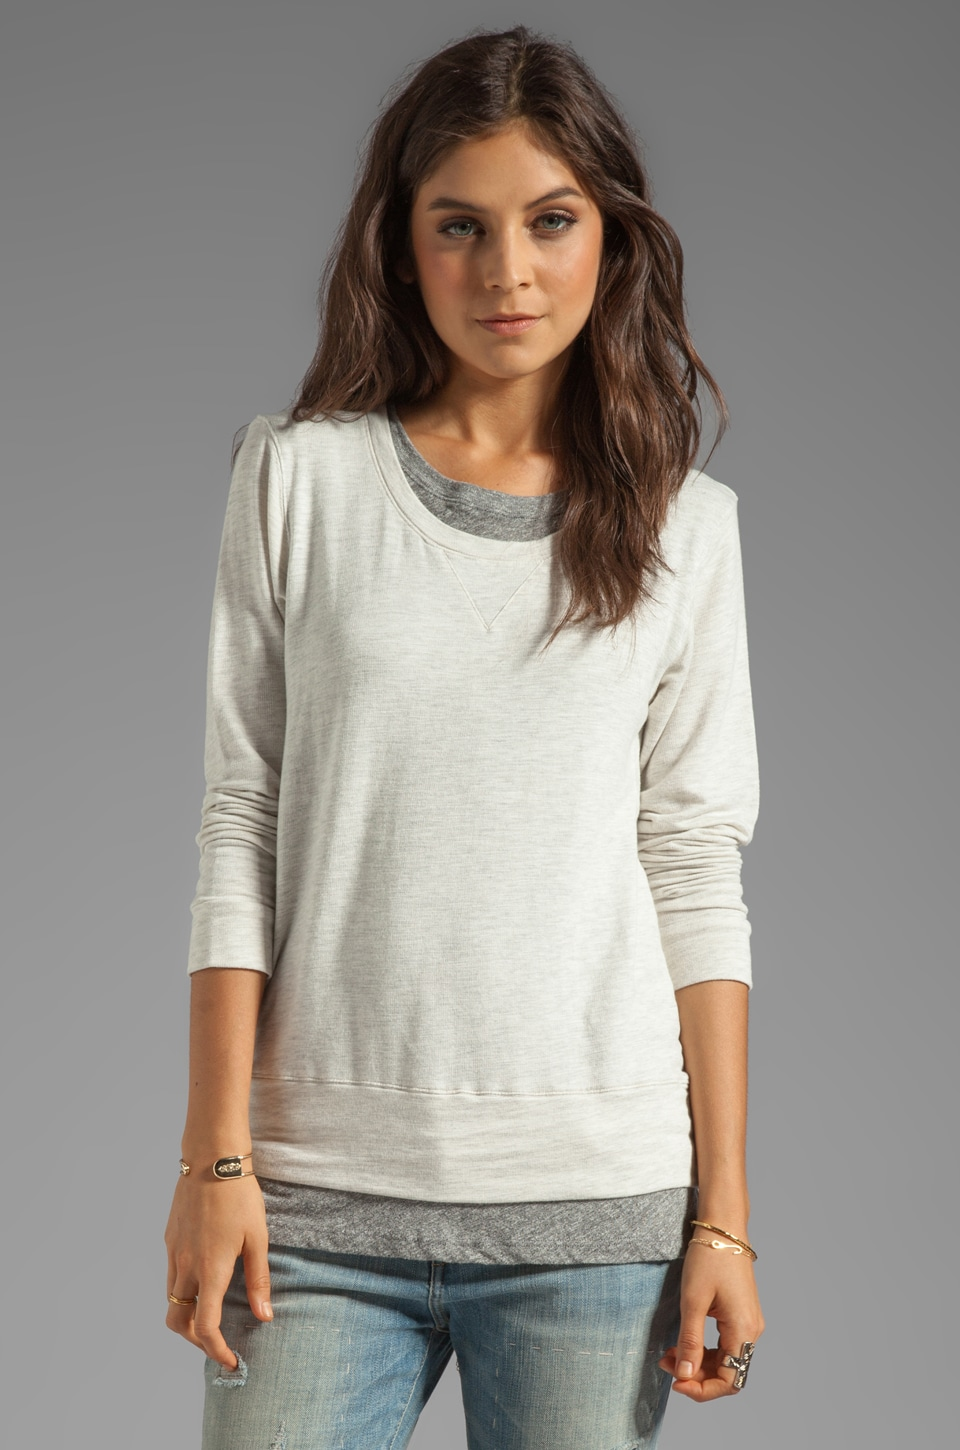 MONROW Layered Soft Fleece Sweatshirt in Natural